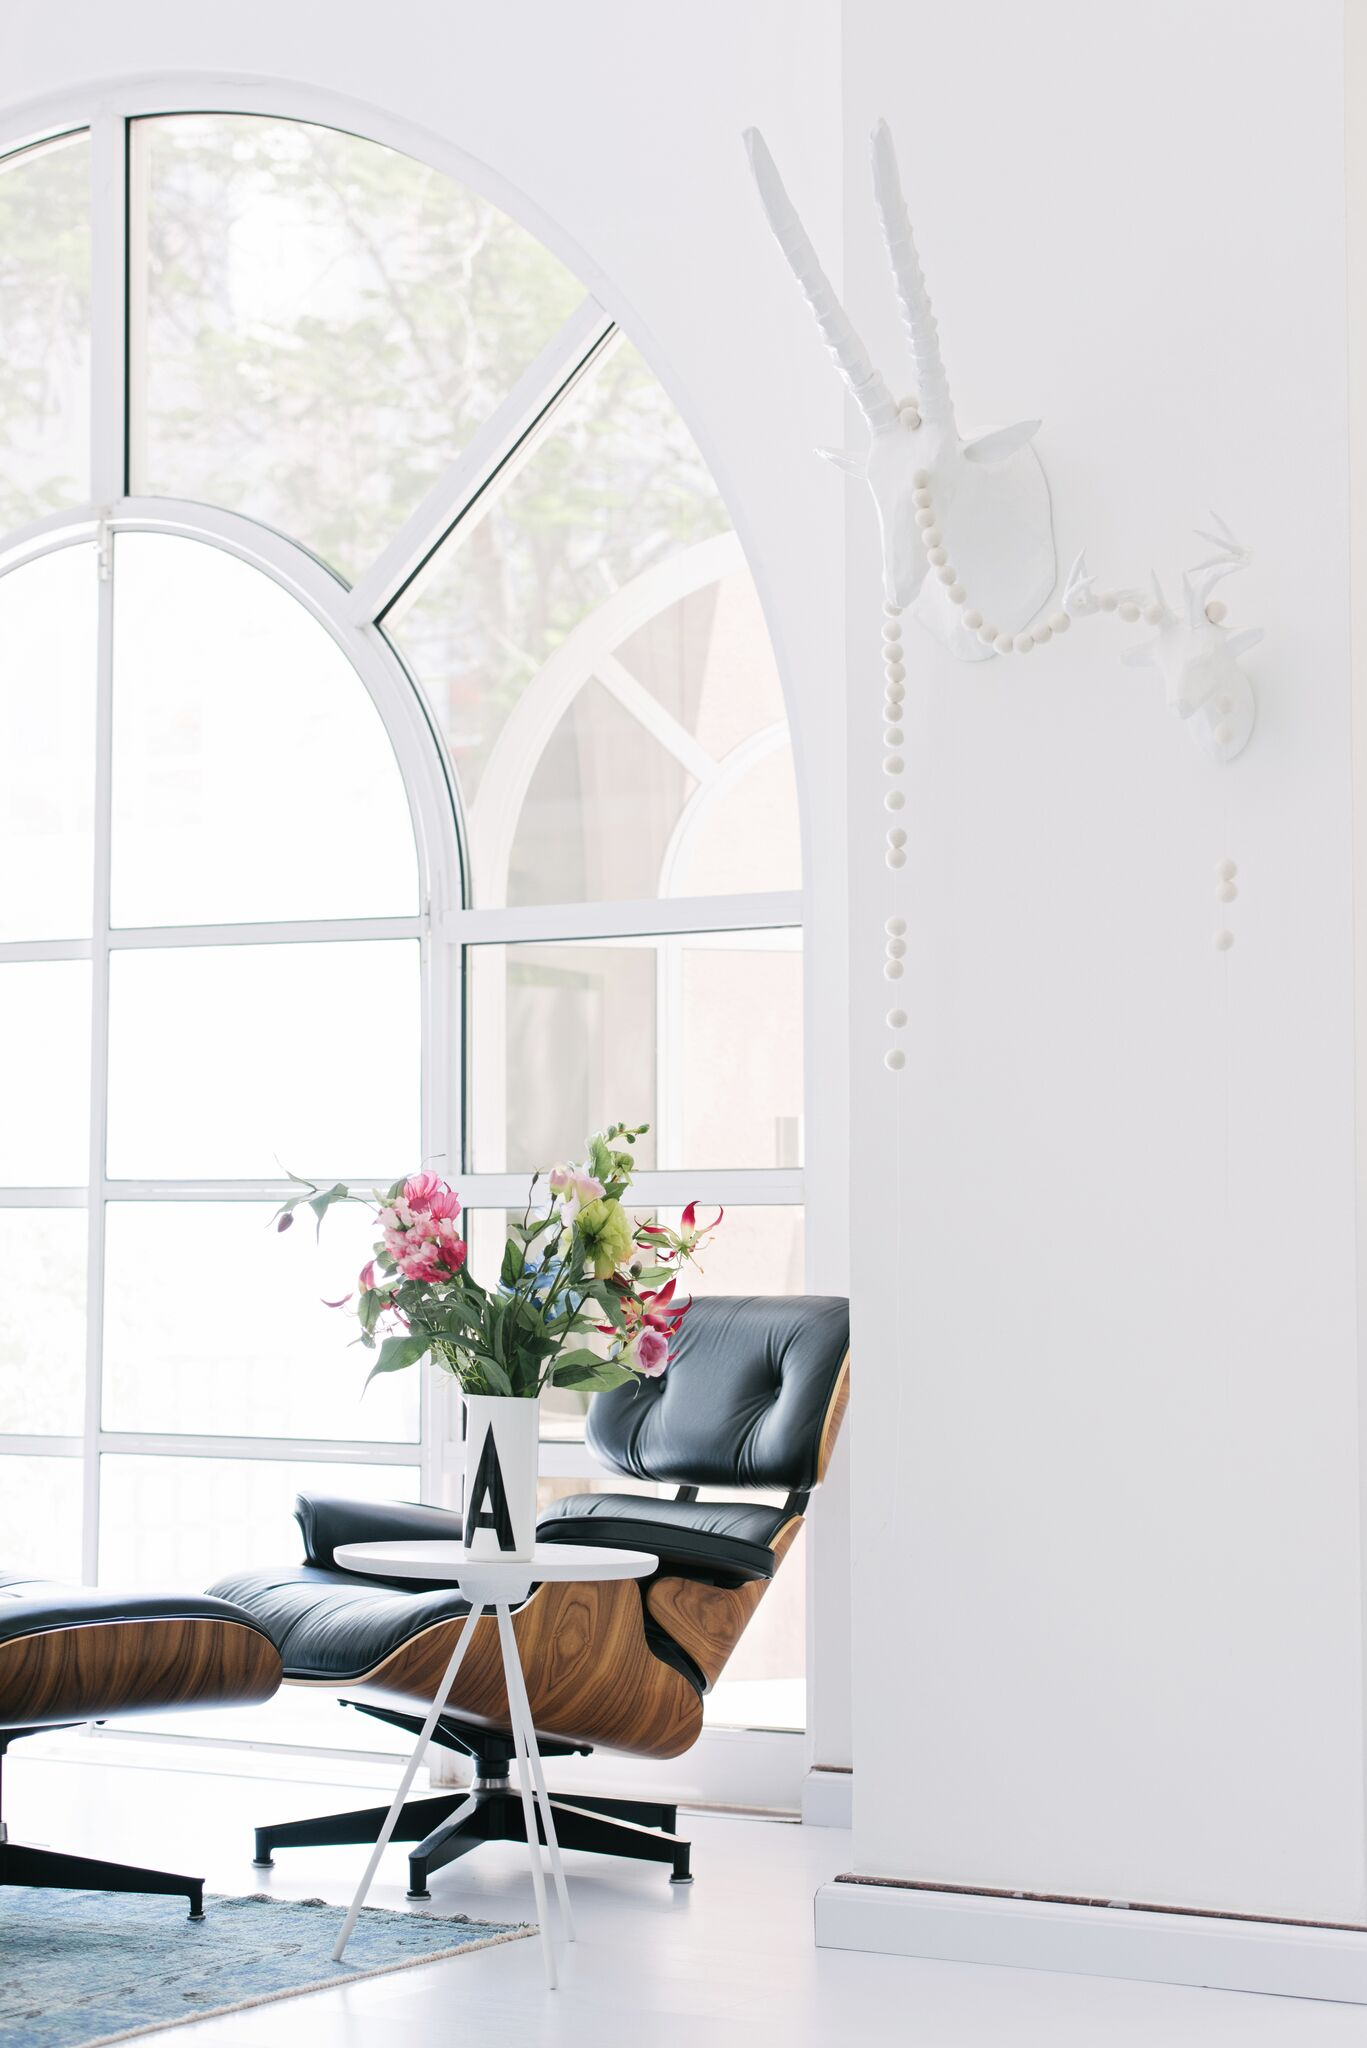 Scandinavian Style Living Room Leather Lounge Chair Next To A Window